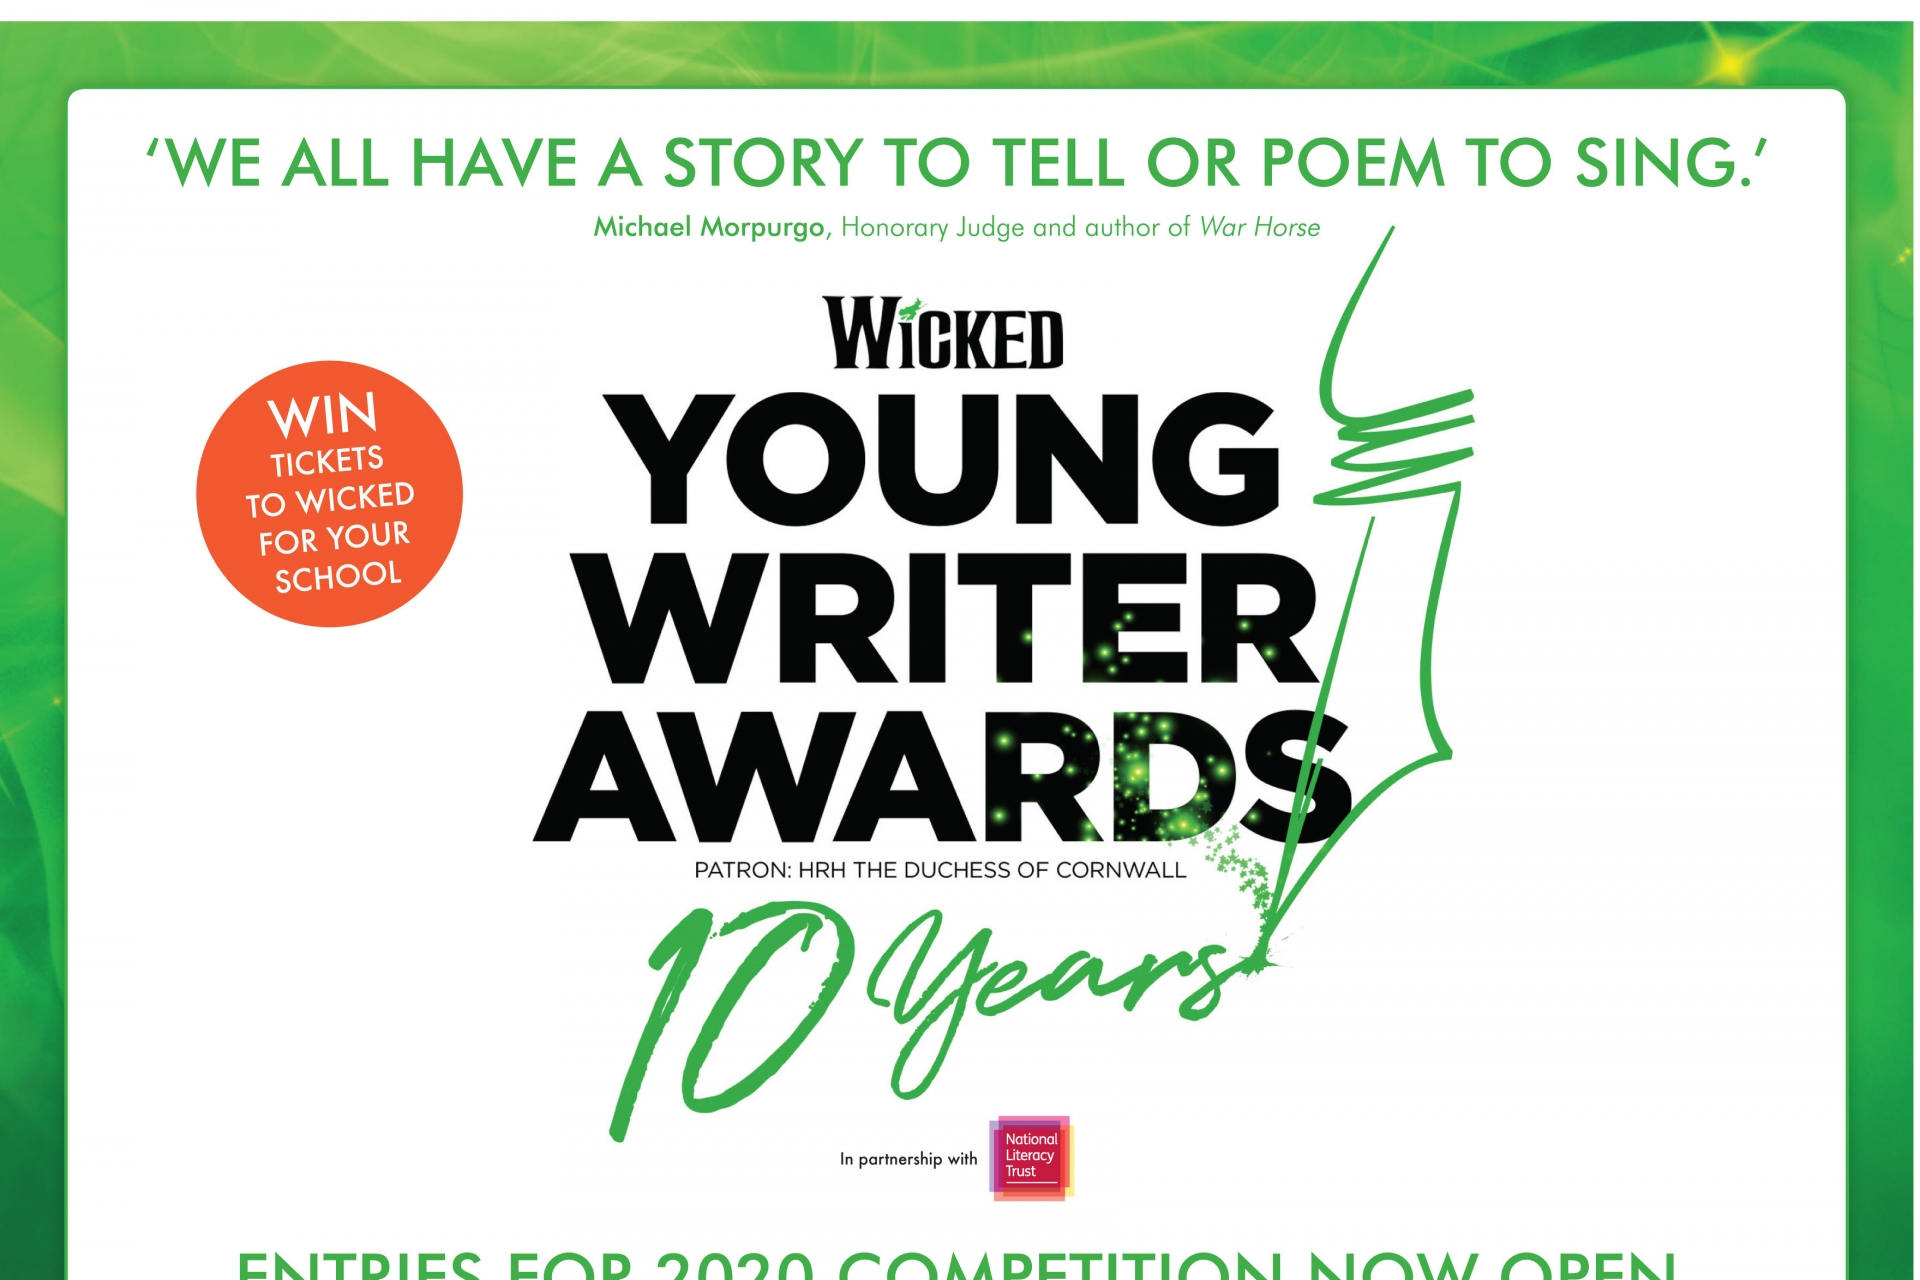 Wicked Young Writer Awards 2020